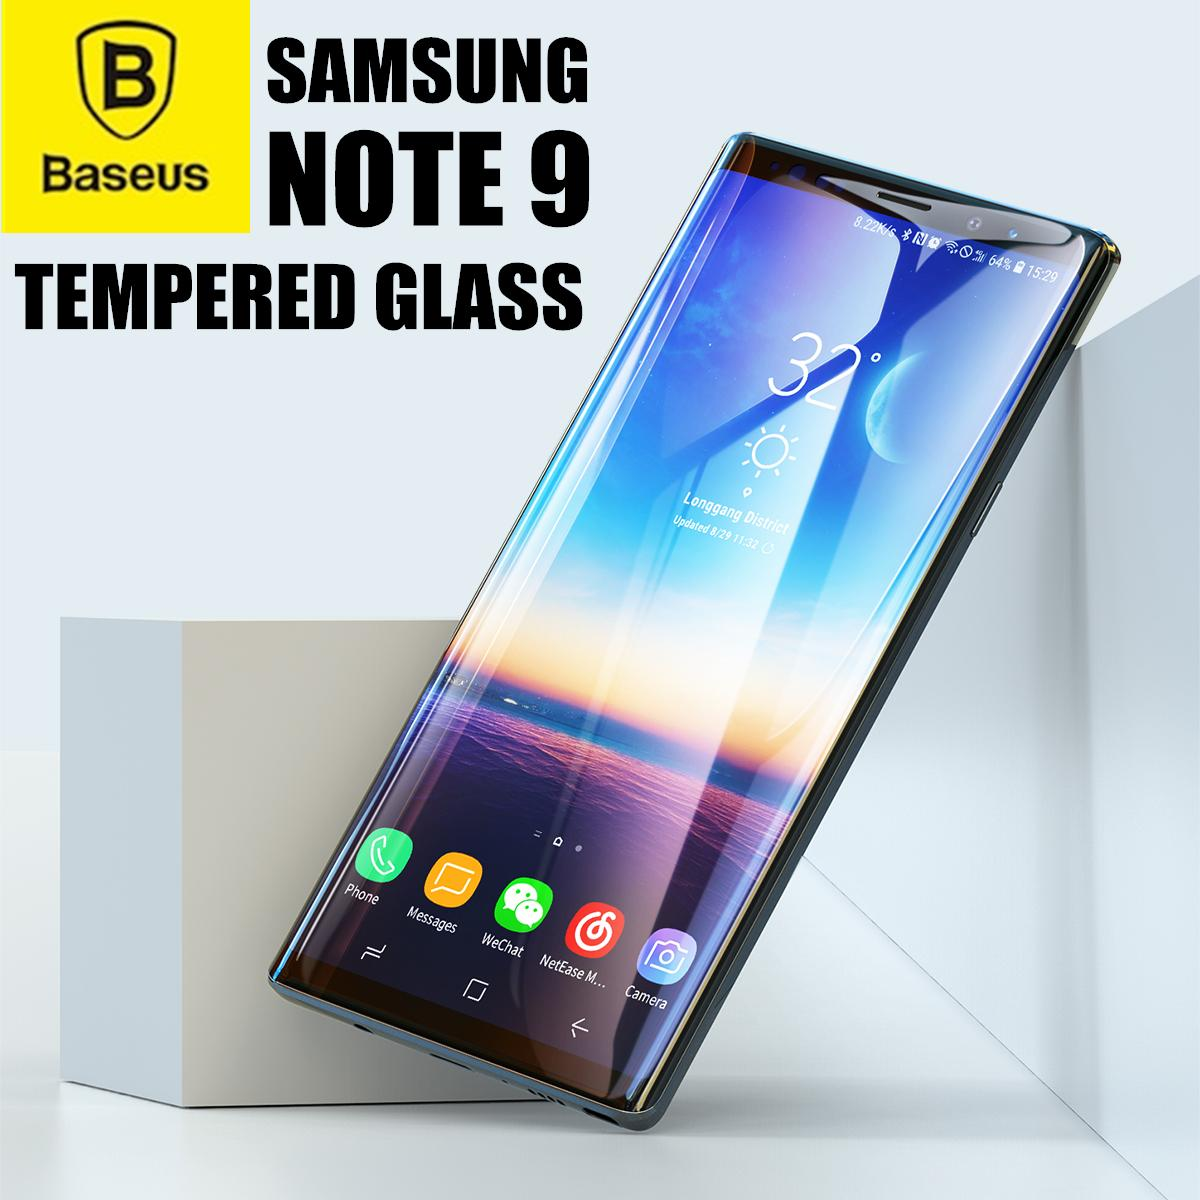 Buy Top Screen Protectors Mobiles Tempered Glass Iphone 8 Plus Clear 3d Full Cover Premium Pro Baseus Surface Protector For Samsung Note 9 03mm Thin 9h